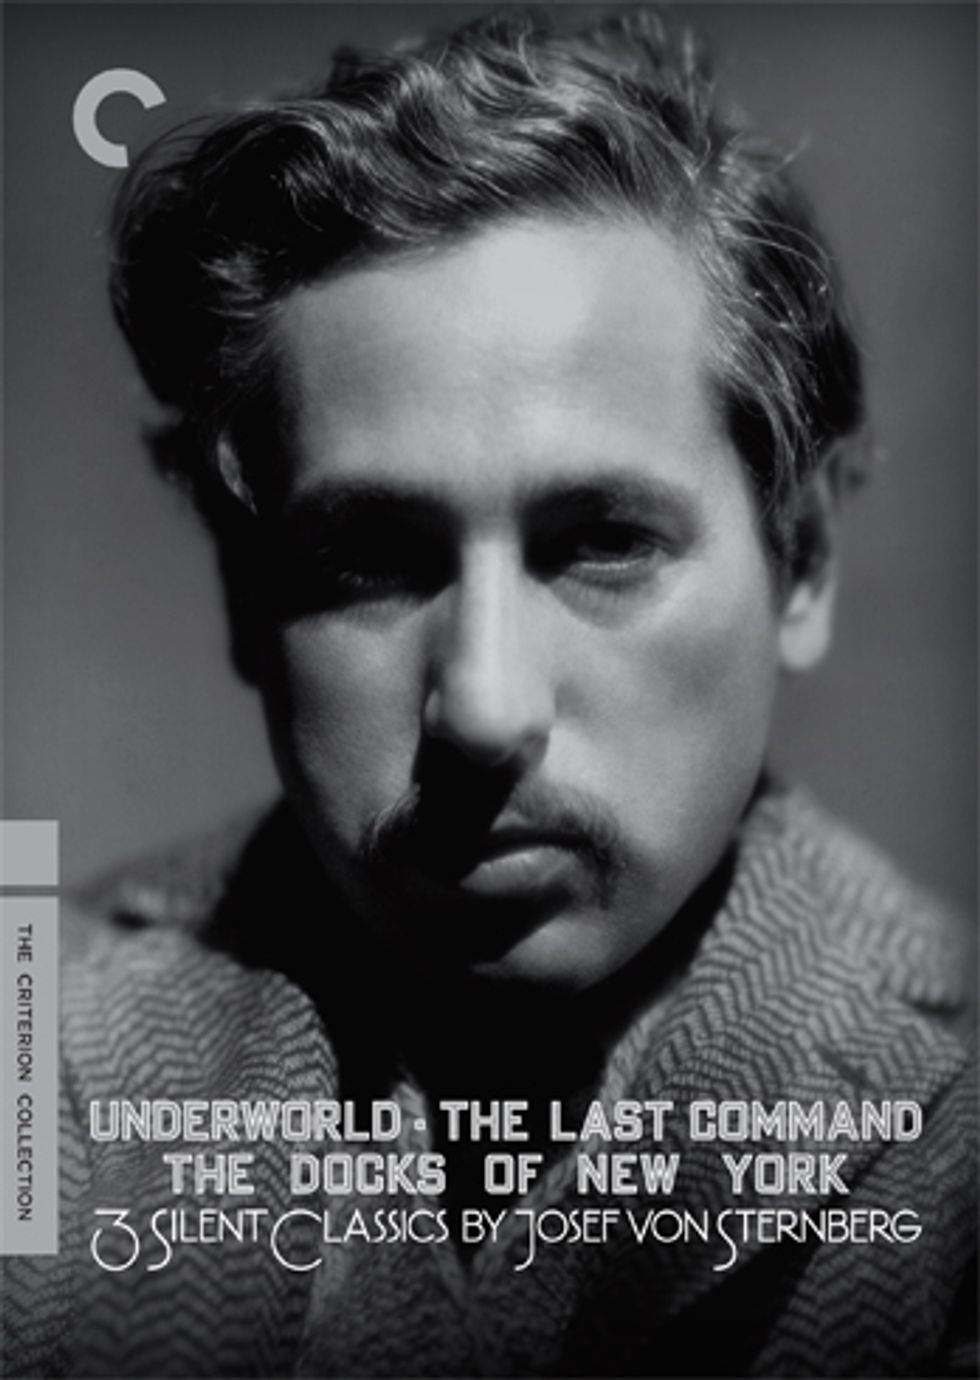 3 Silent Classics By Josef Von Sternberg On Criterion DVD!